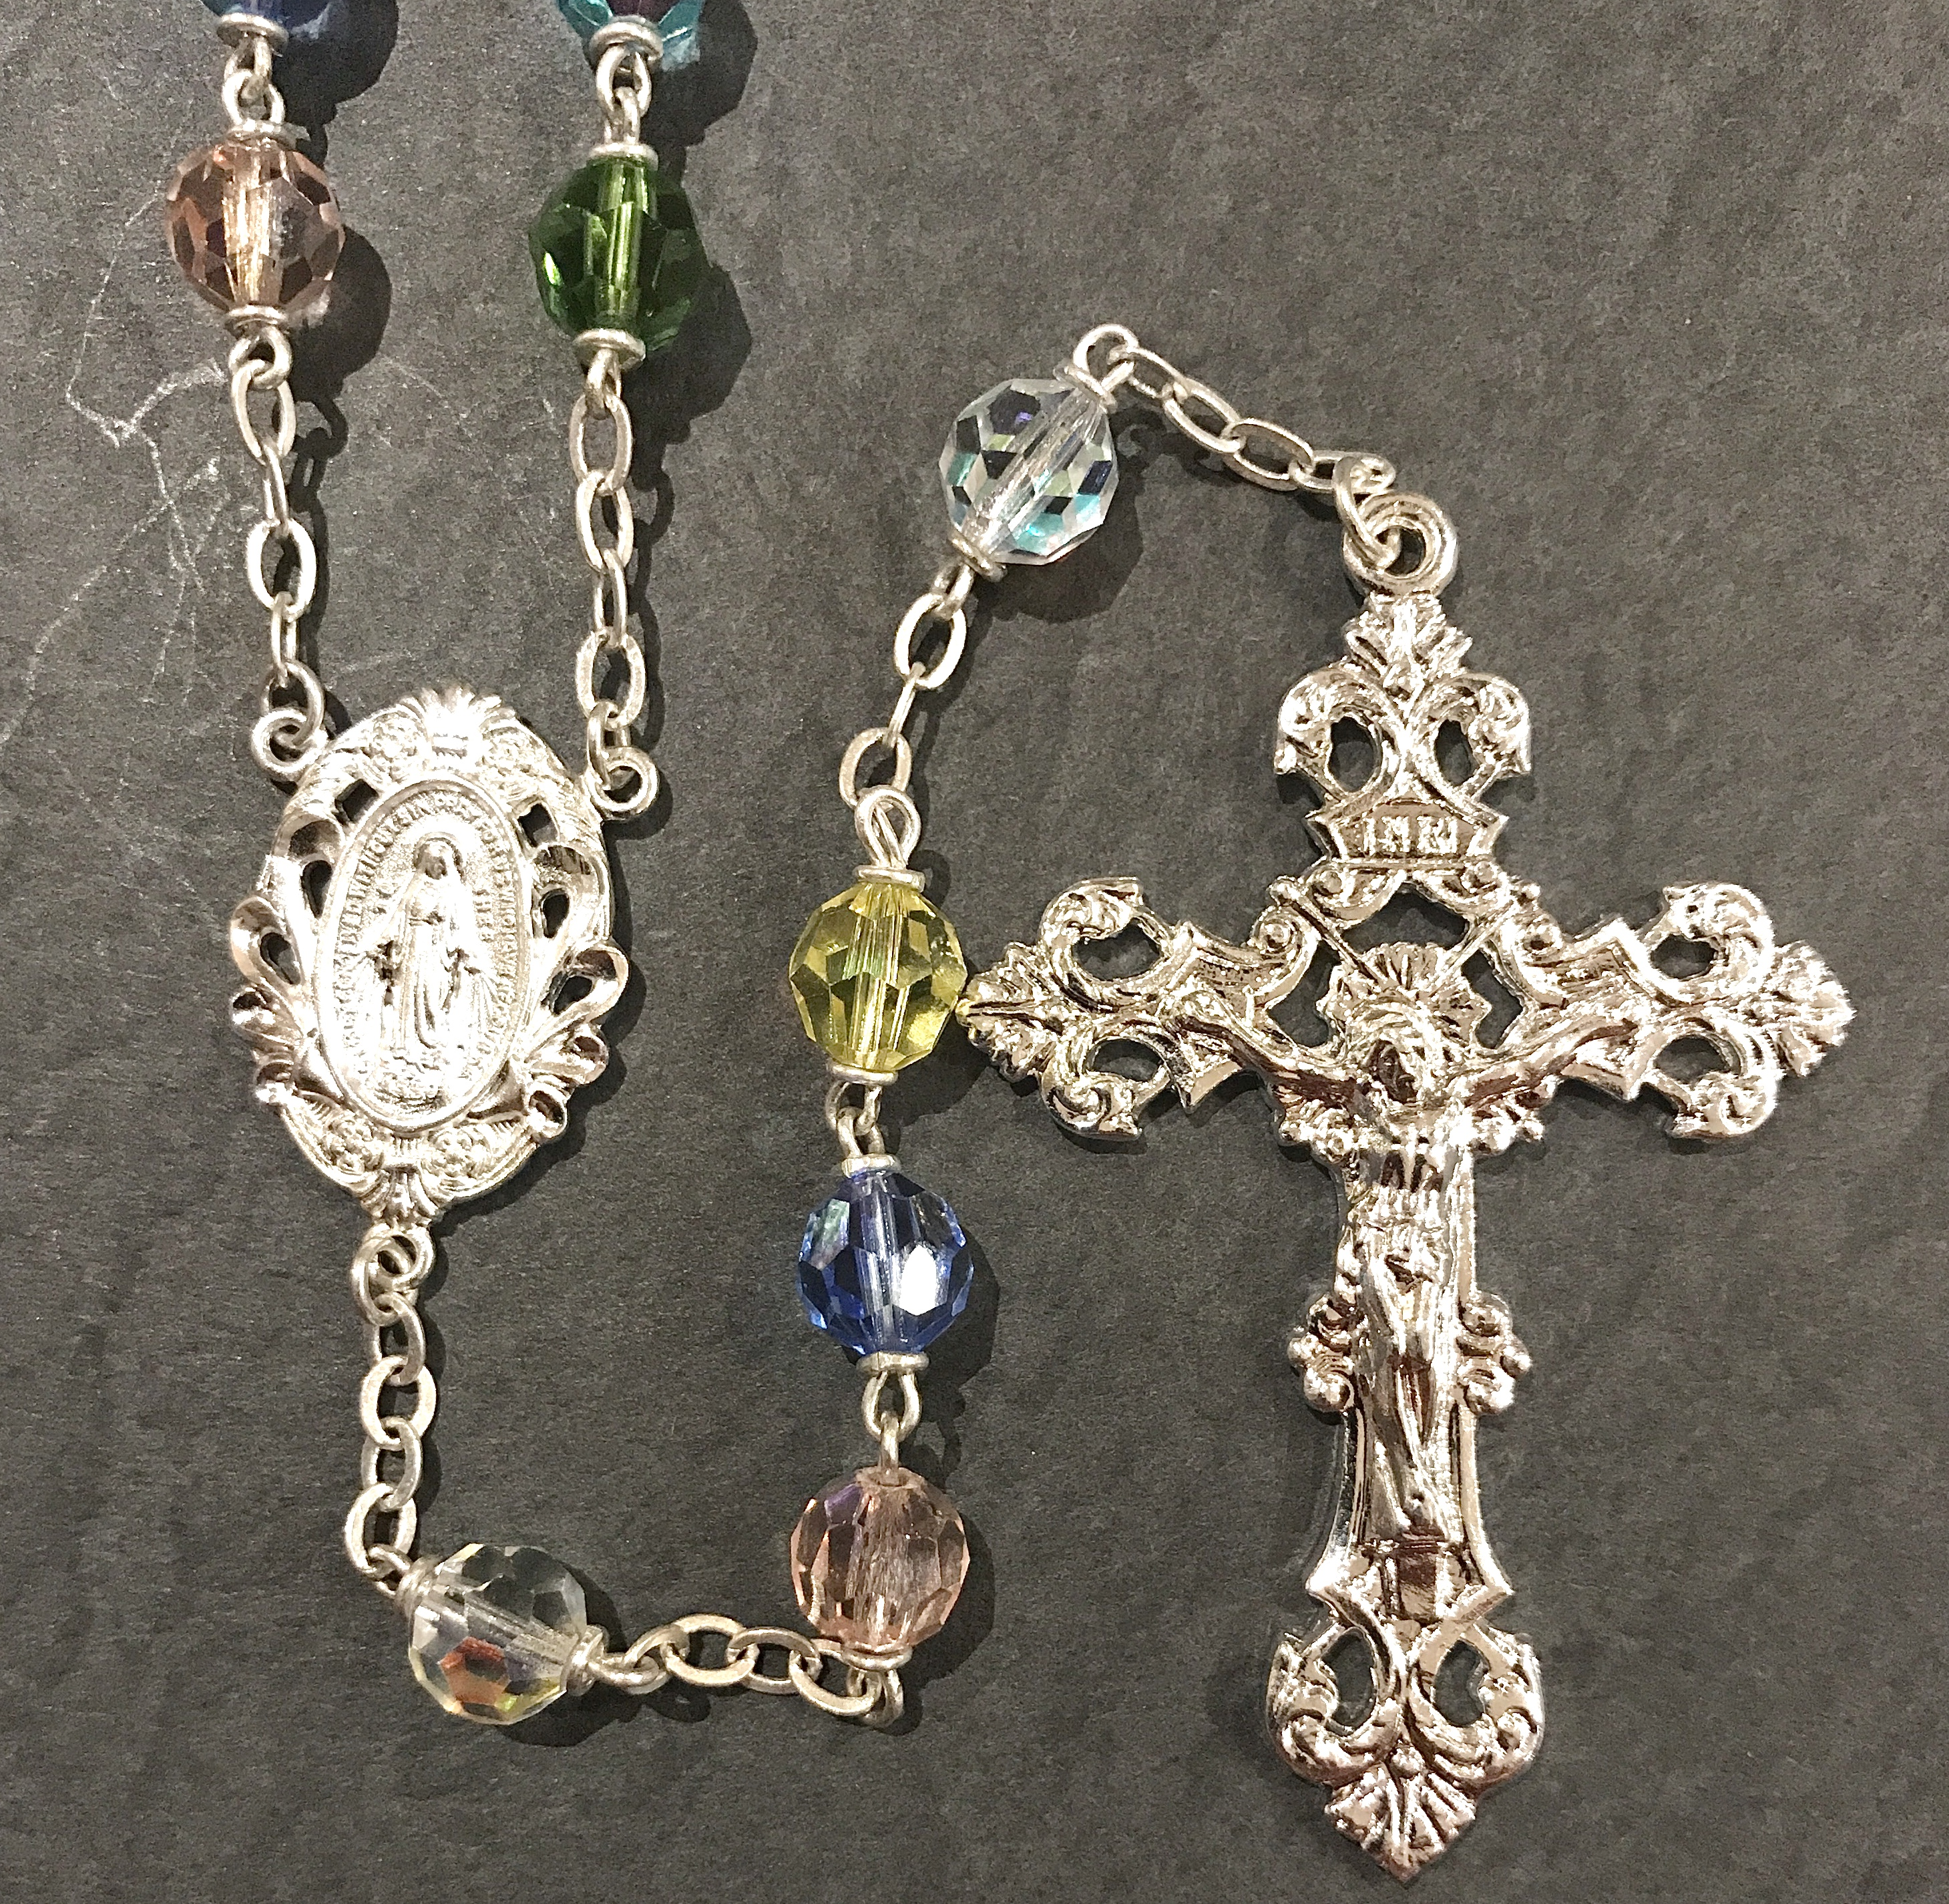 7mm MULTI COLOR TIN CUT AB ROSARY WITH STERLING SILVER PLATED CRUCIFIX, CENTER, WIRE, CHAIN GIFT BOXED